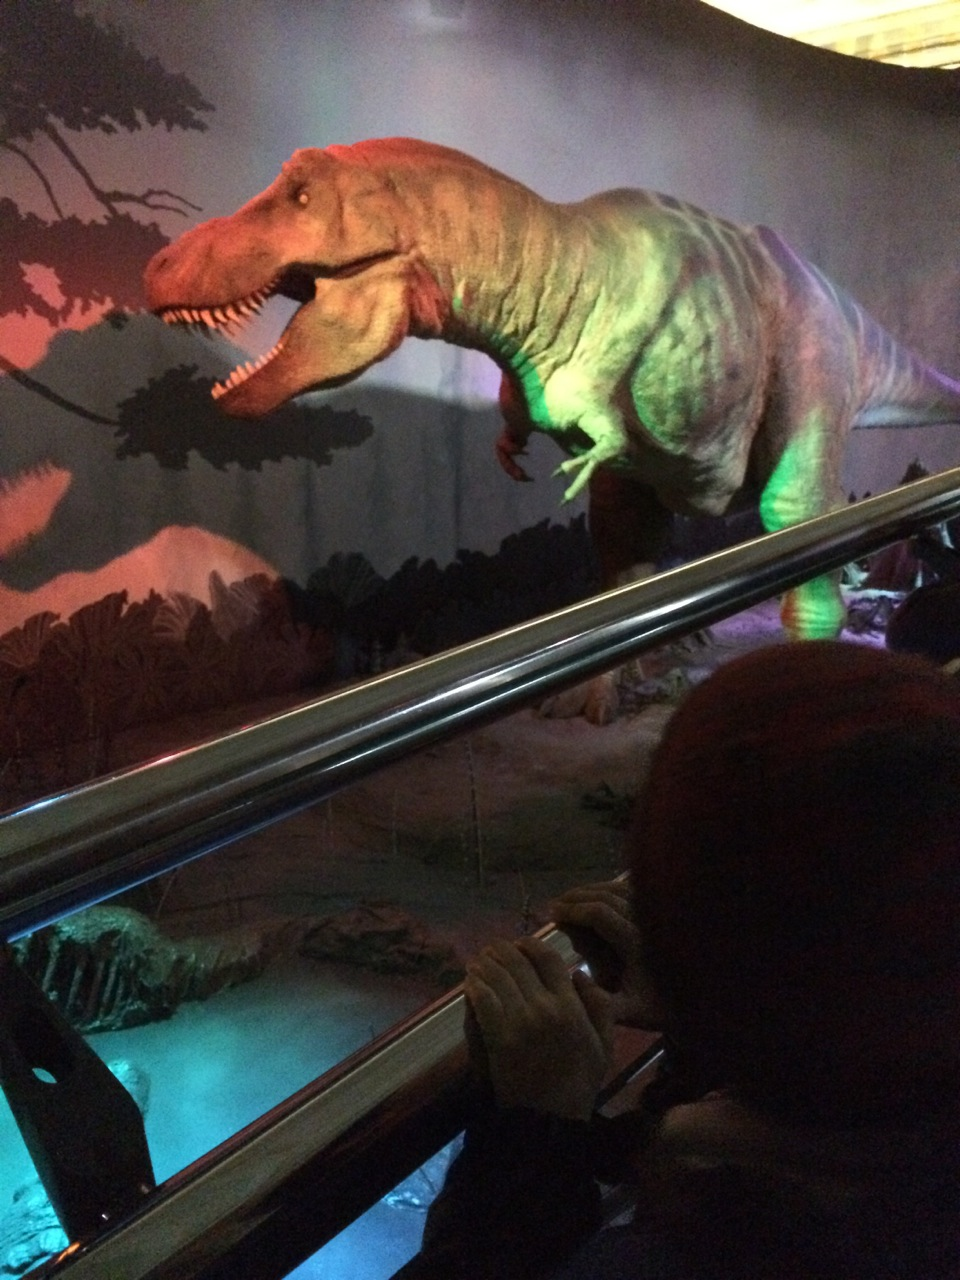 This animatronic T-Rex is a highlight of the exhibit, except for maybe the smallest children